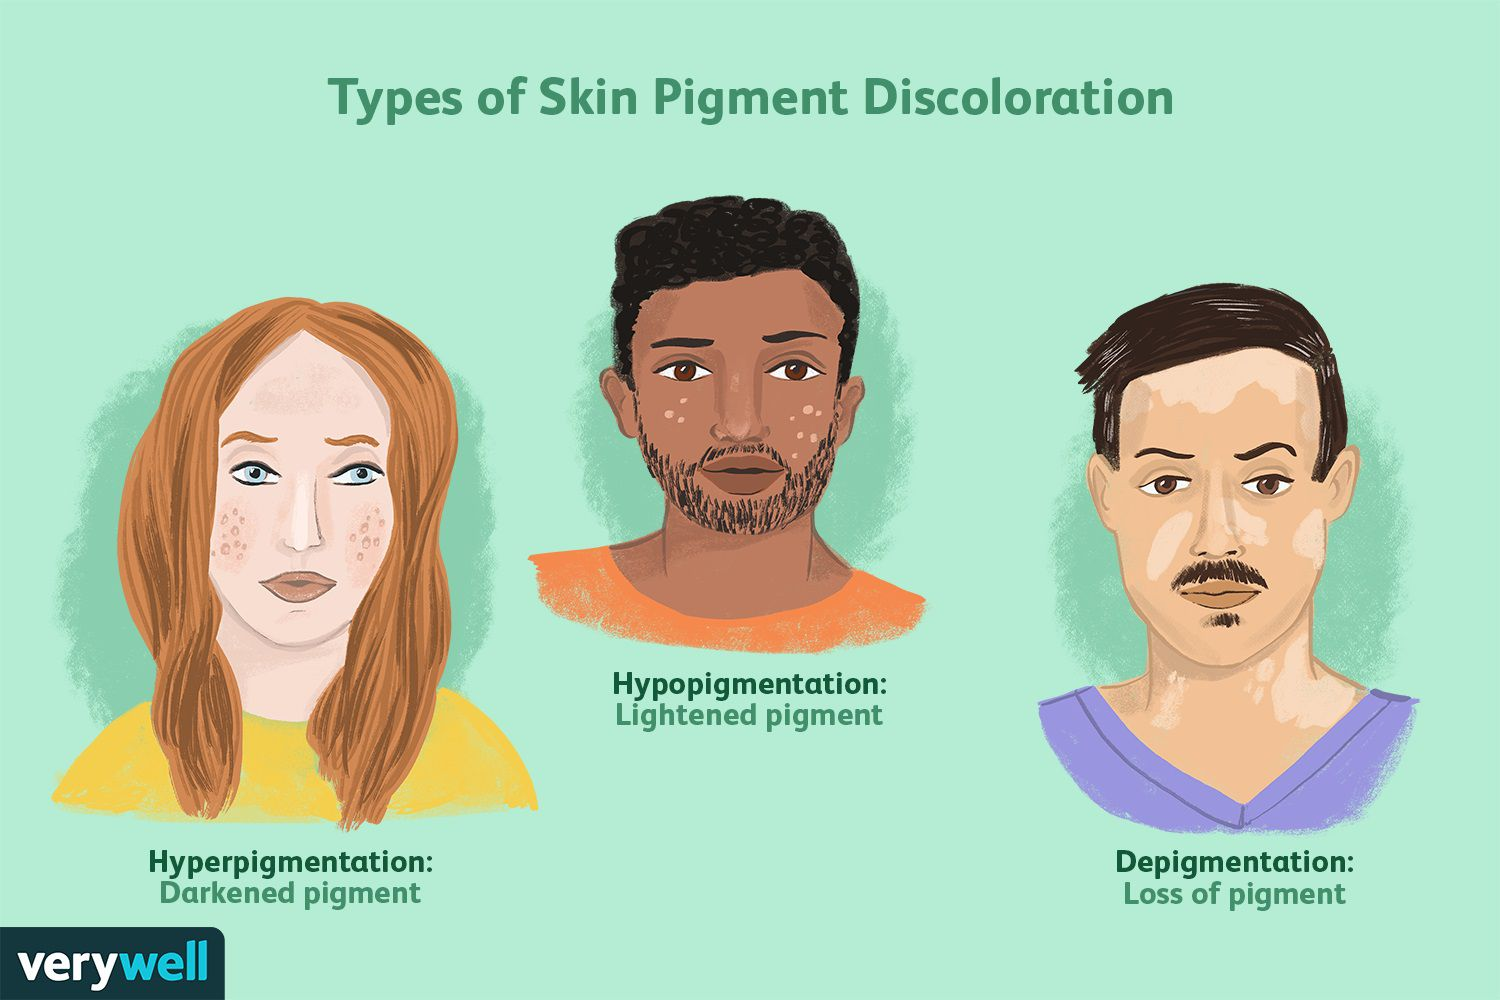 Types of Skin Pigment Discoloration